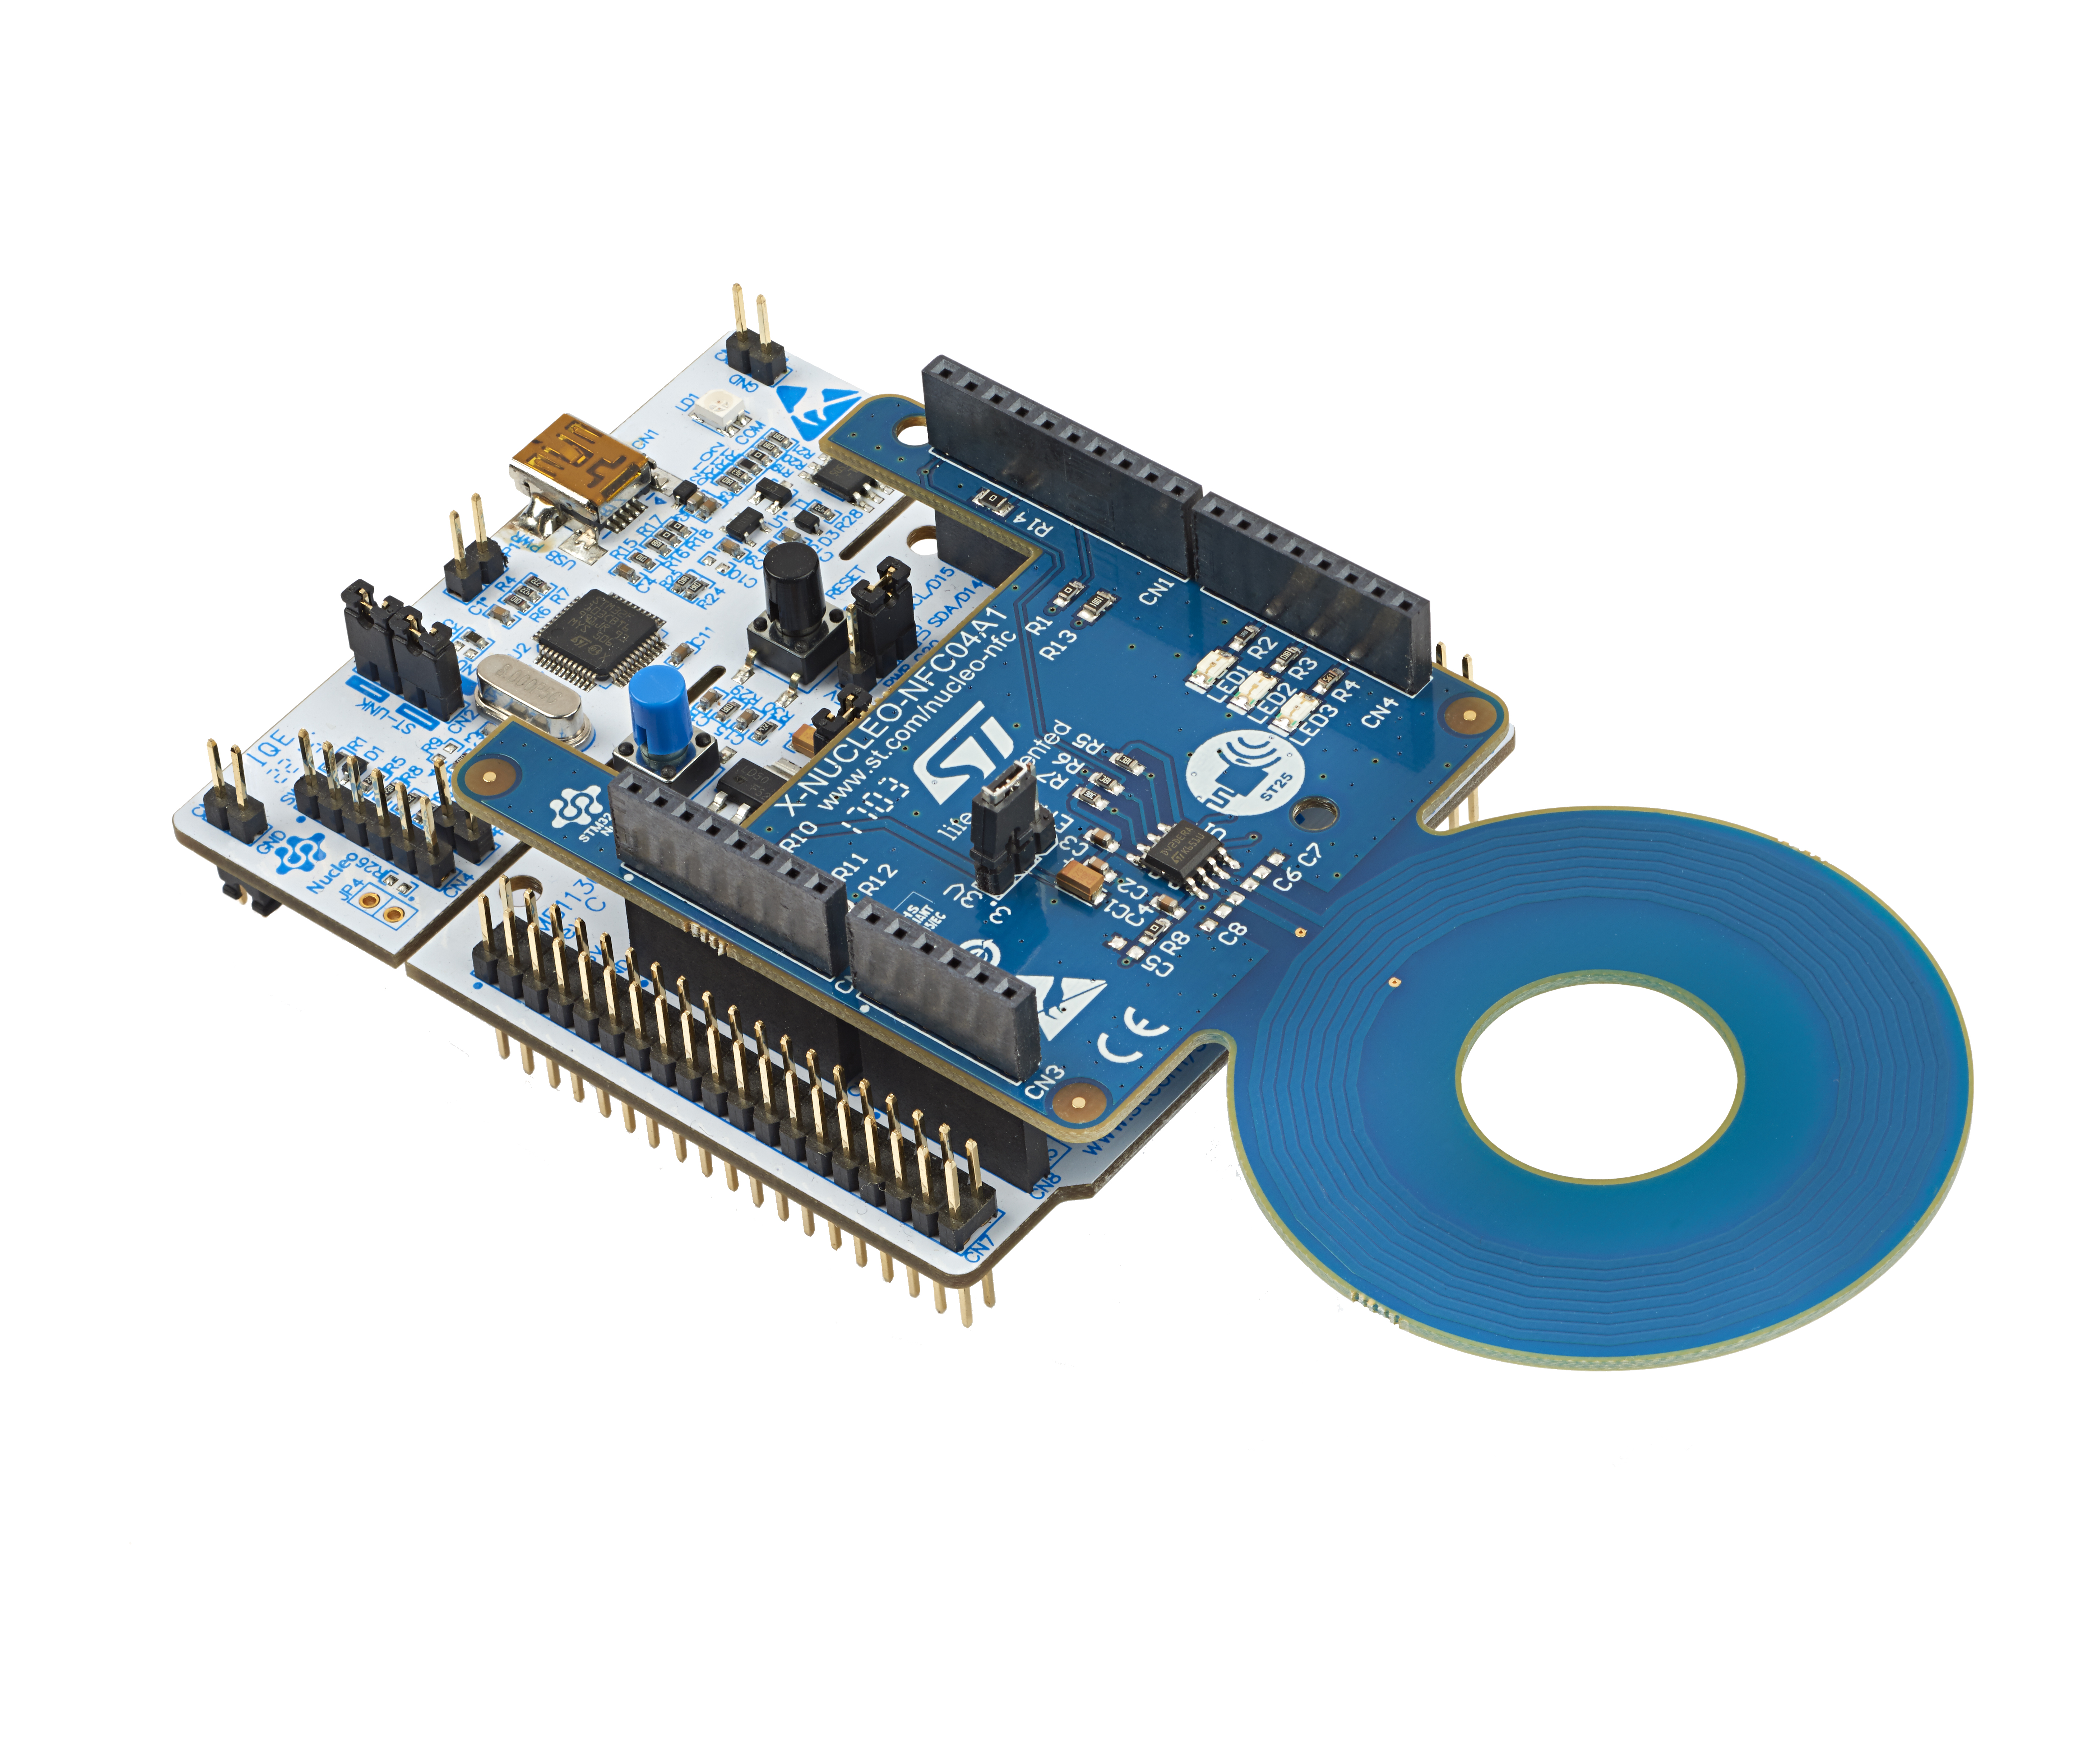 FP-SNS-FLIGHT1 - STM32Cube function pack for IoT node with NFC, BLE